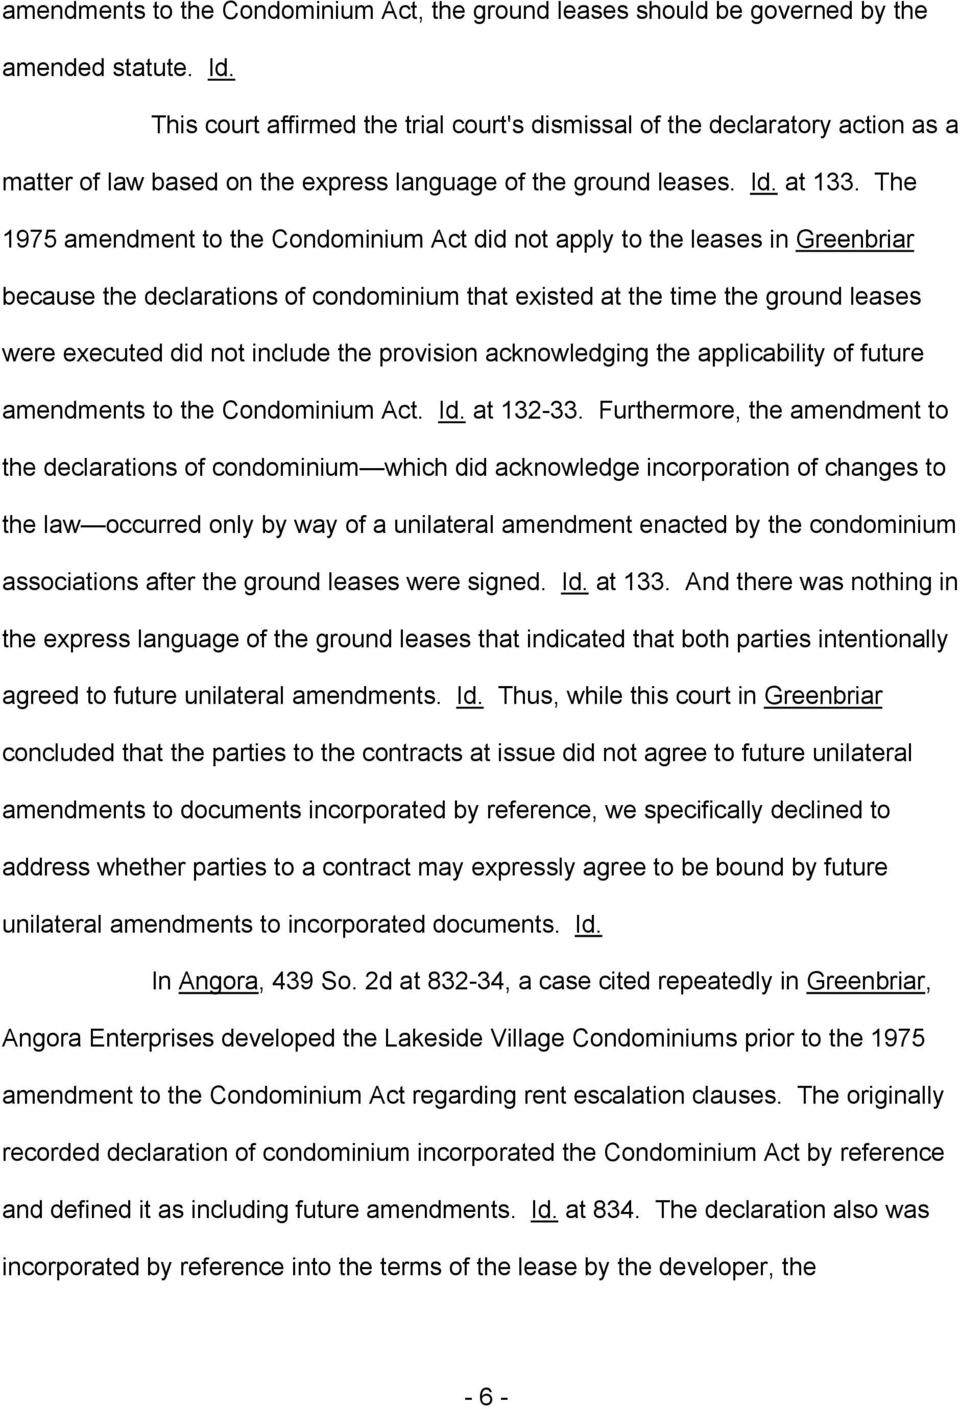 The 1975 amendment to the Condominium Act did not apply to the leases in Greenbriar because the declarations of condominium that existed at the time the ground leases were executed did not include